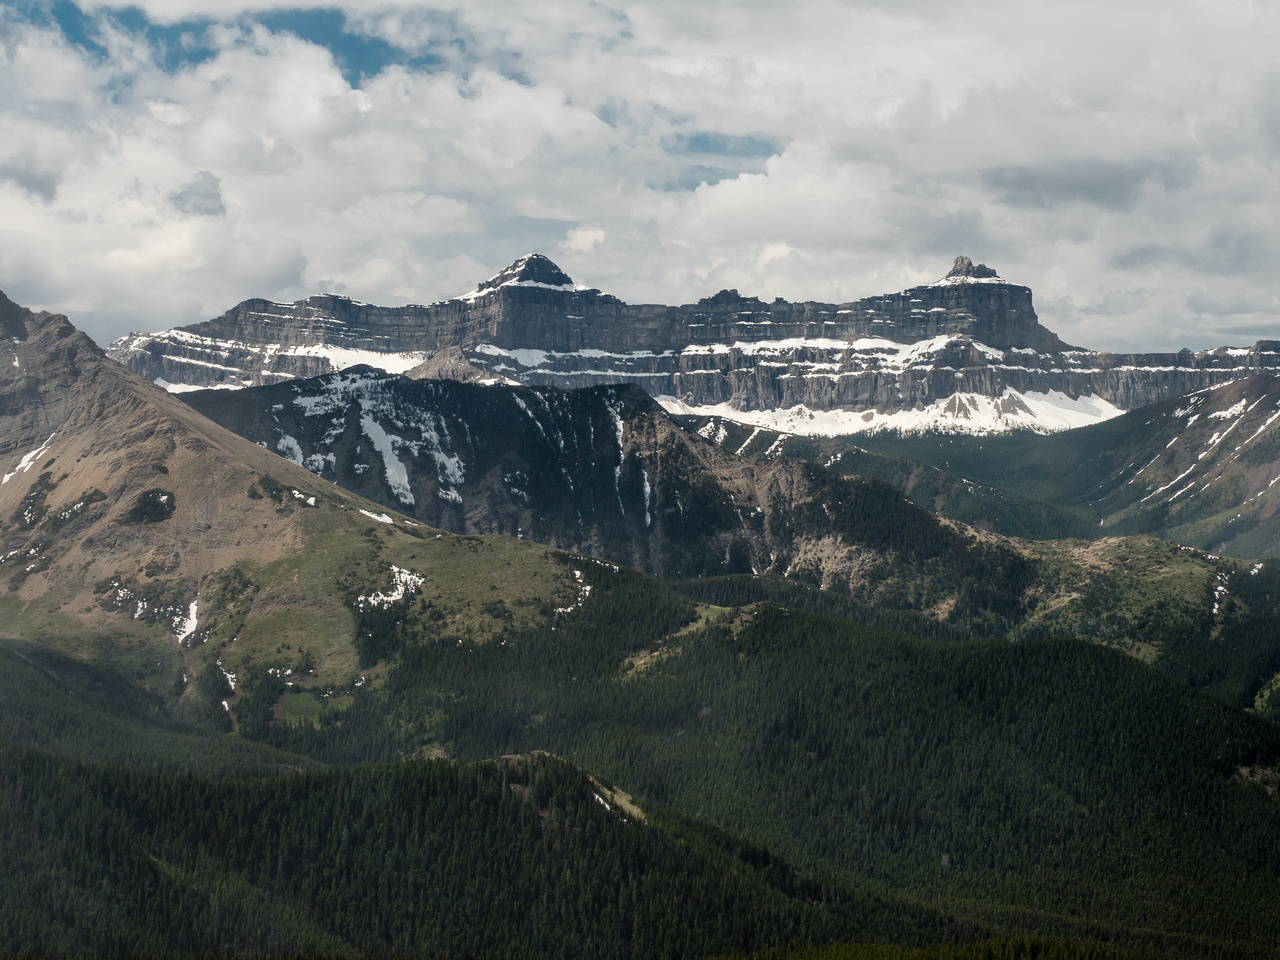 Windsor Mountain and Castle Peak (r) are the most impressive and recognizable summits in the area.